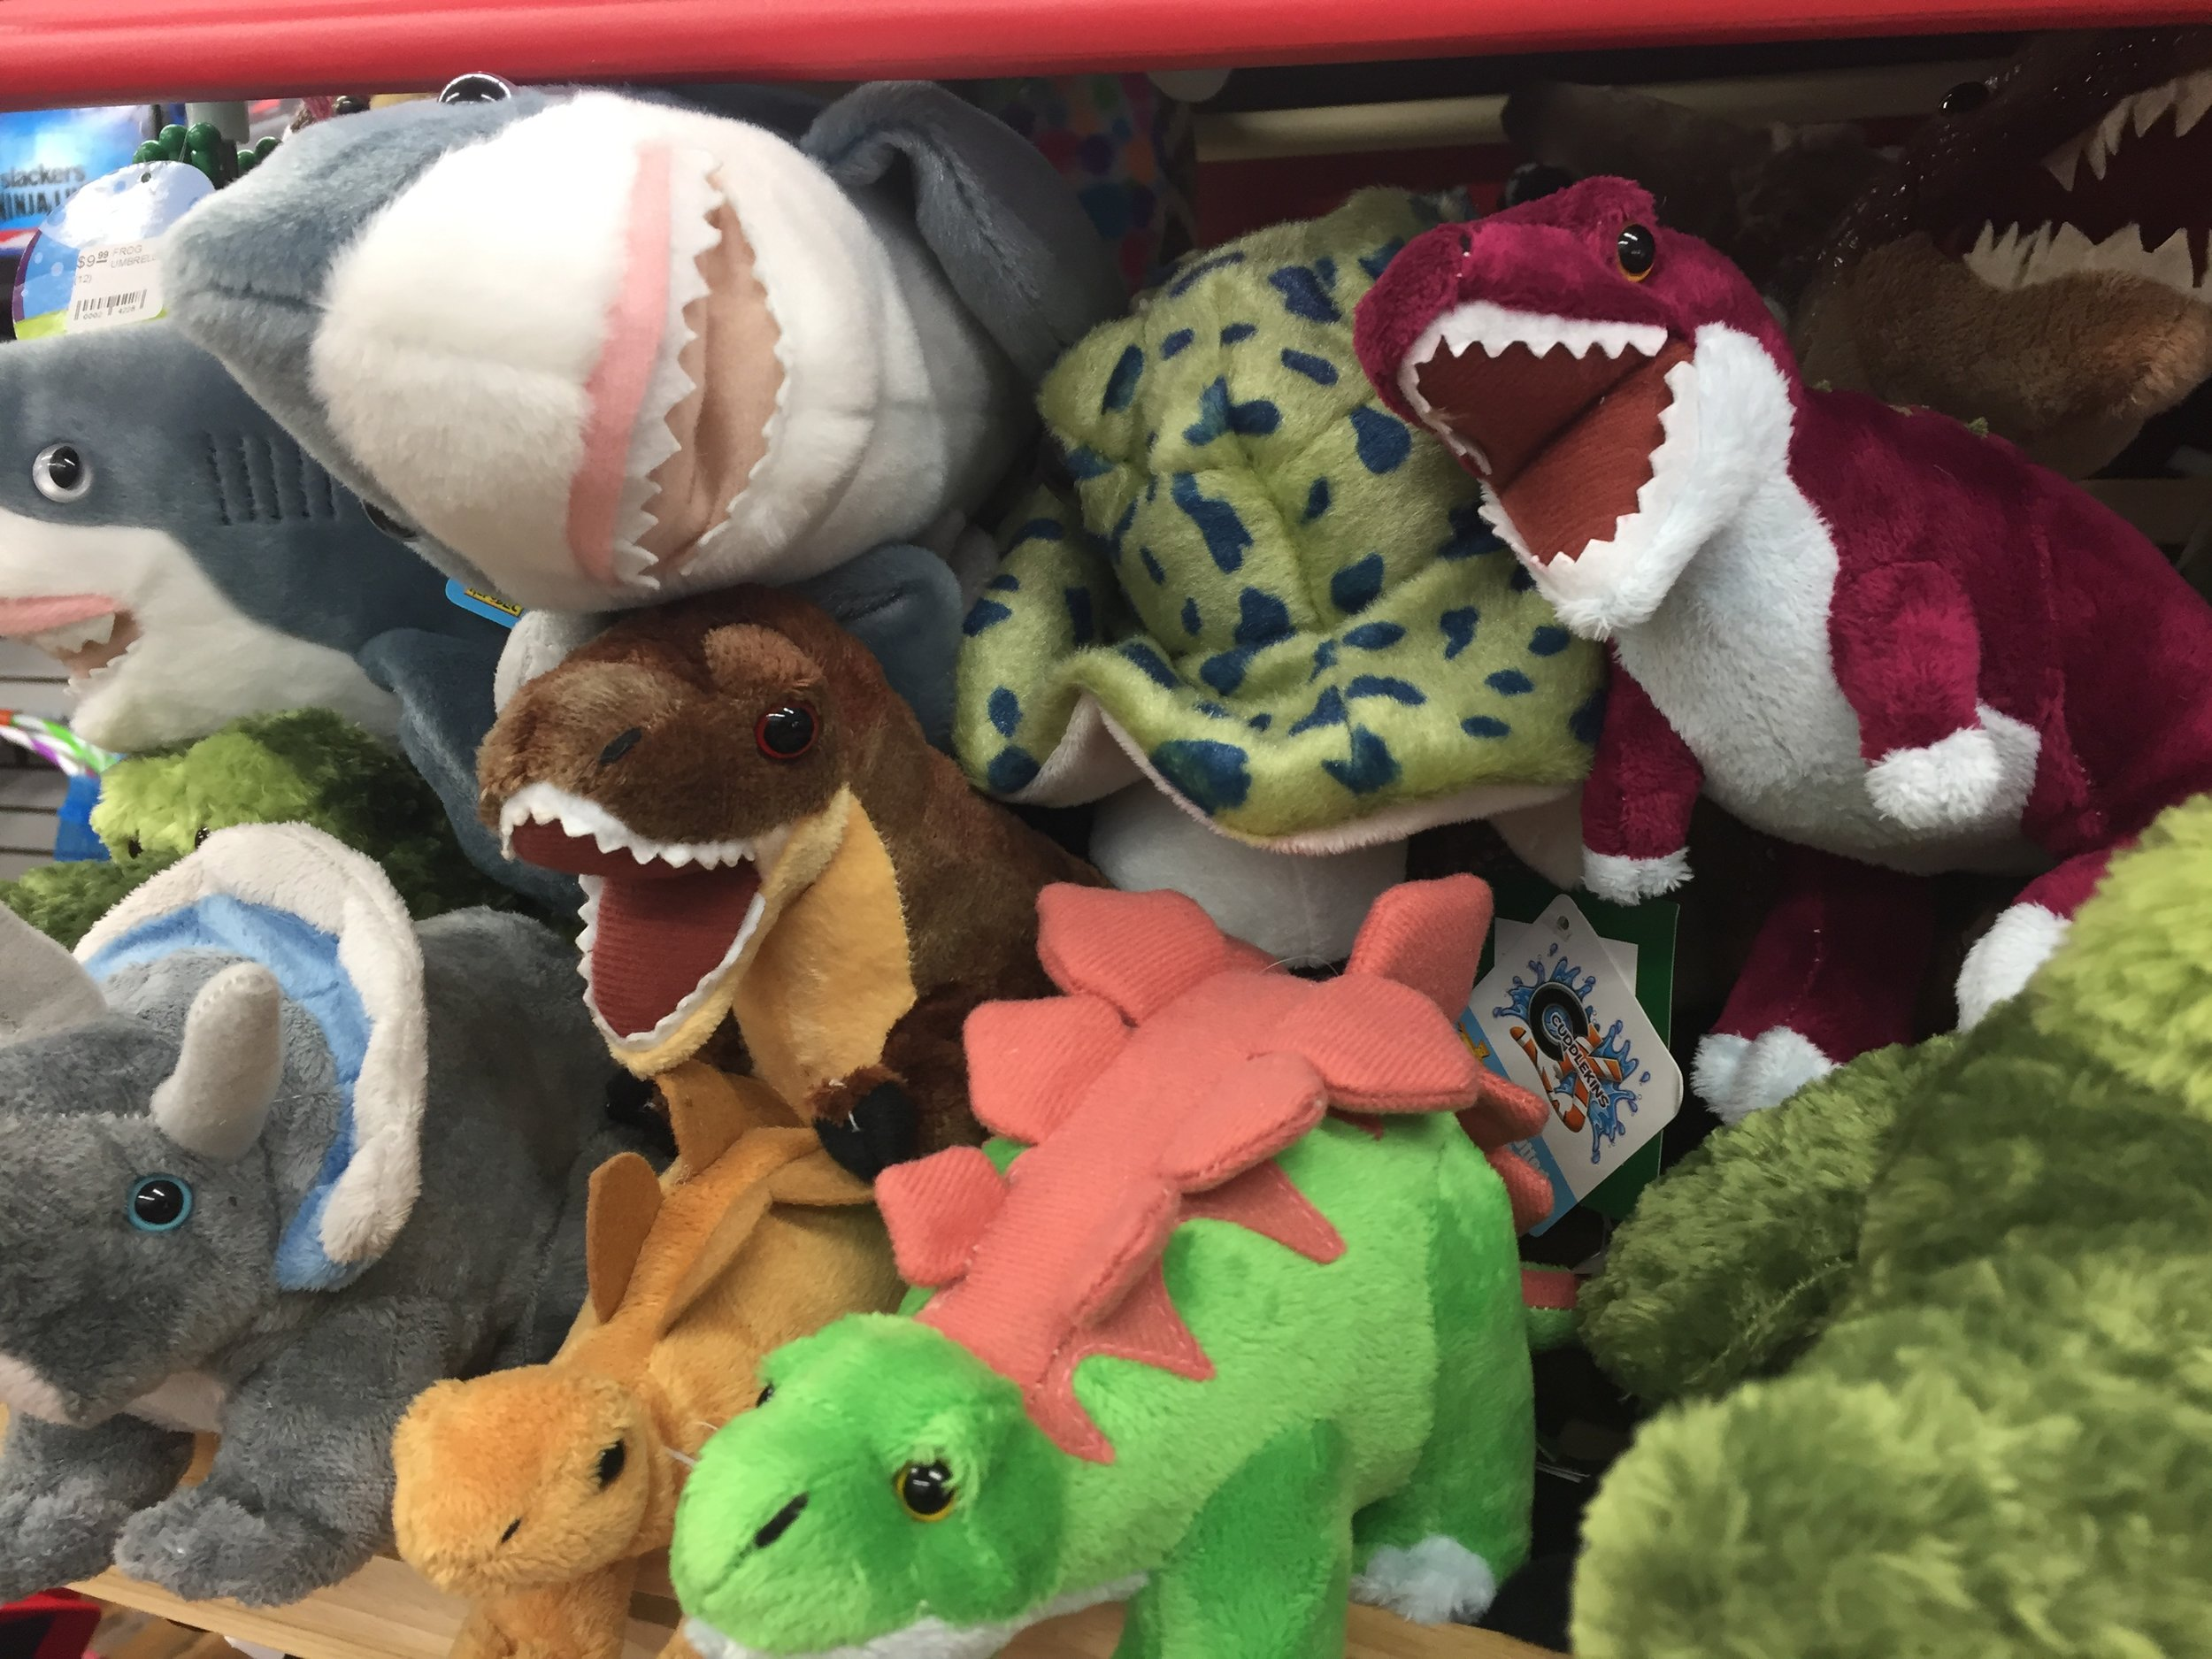 Find fun for everyone at Mainstreet Toys in Hamilton, Montana!